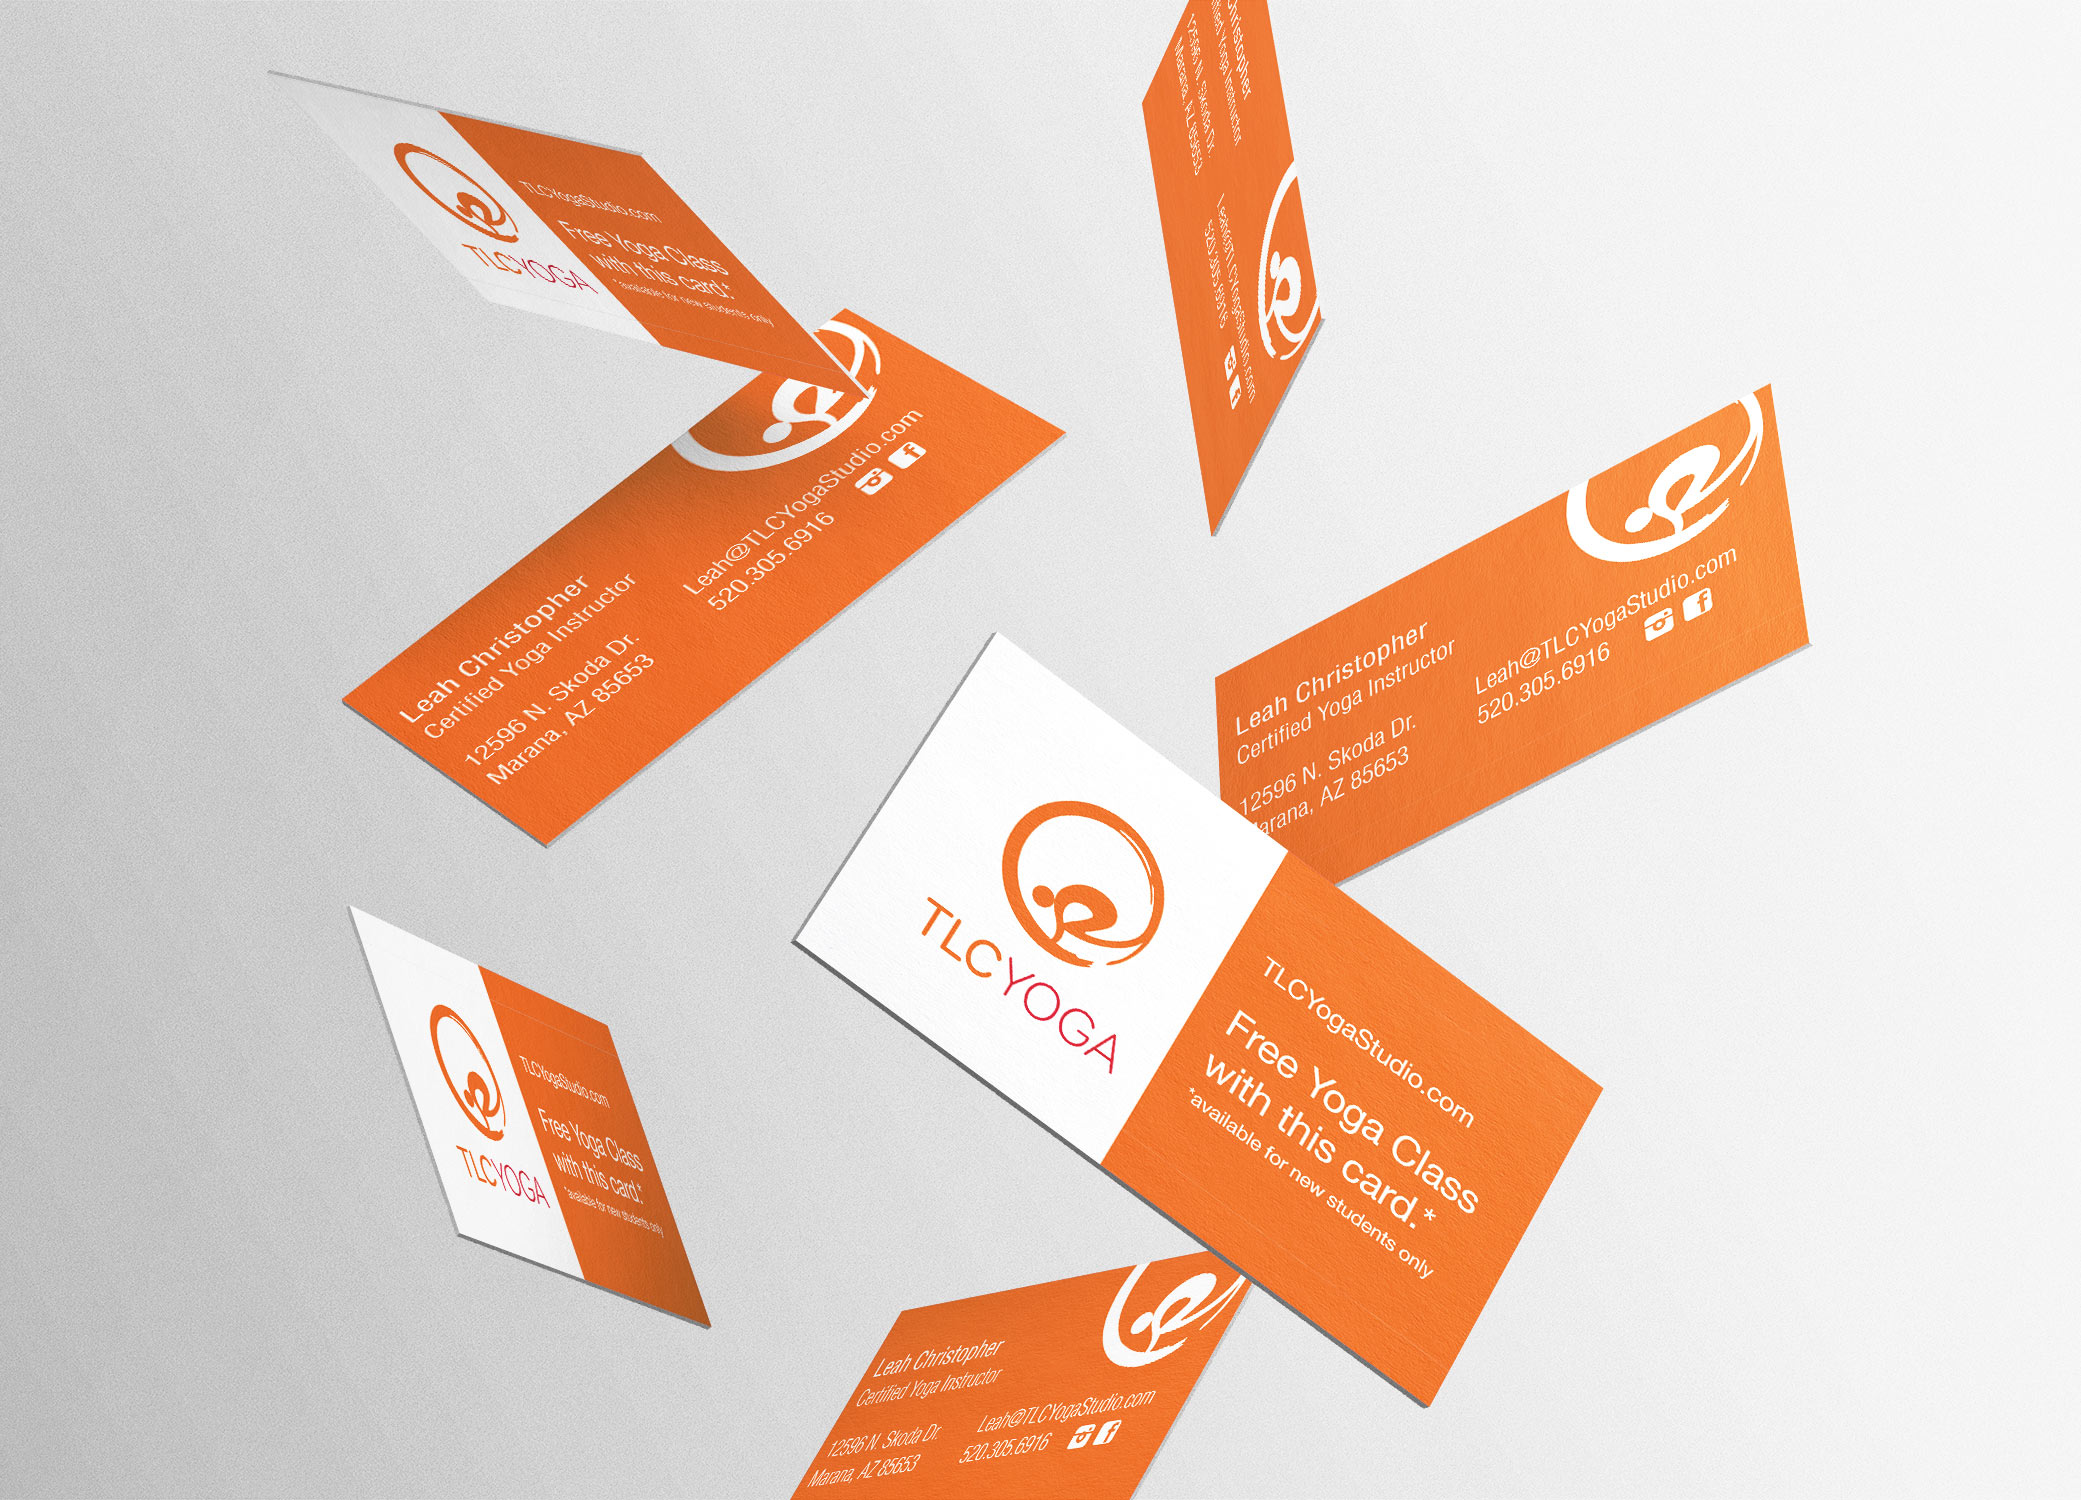 TLC Yoga free-falling business cards in orange and white against a grey background.